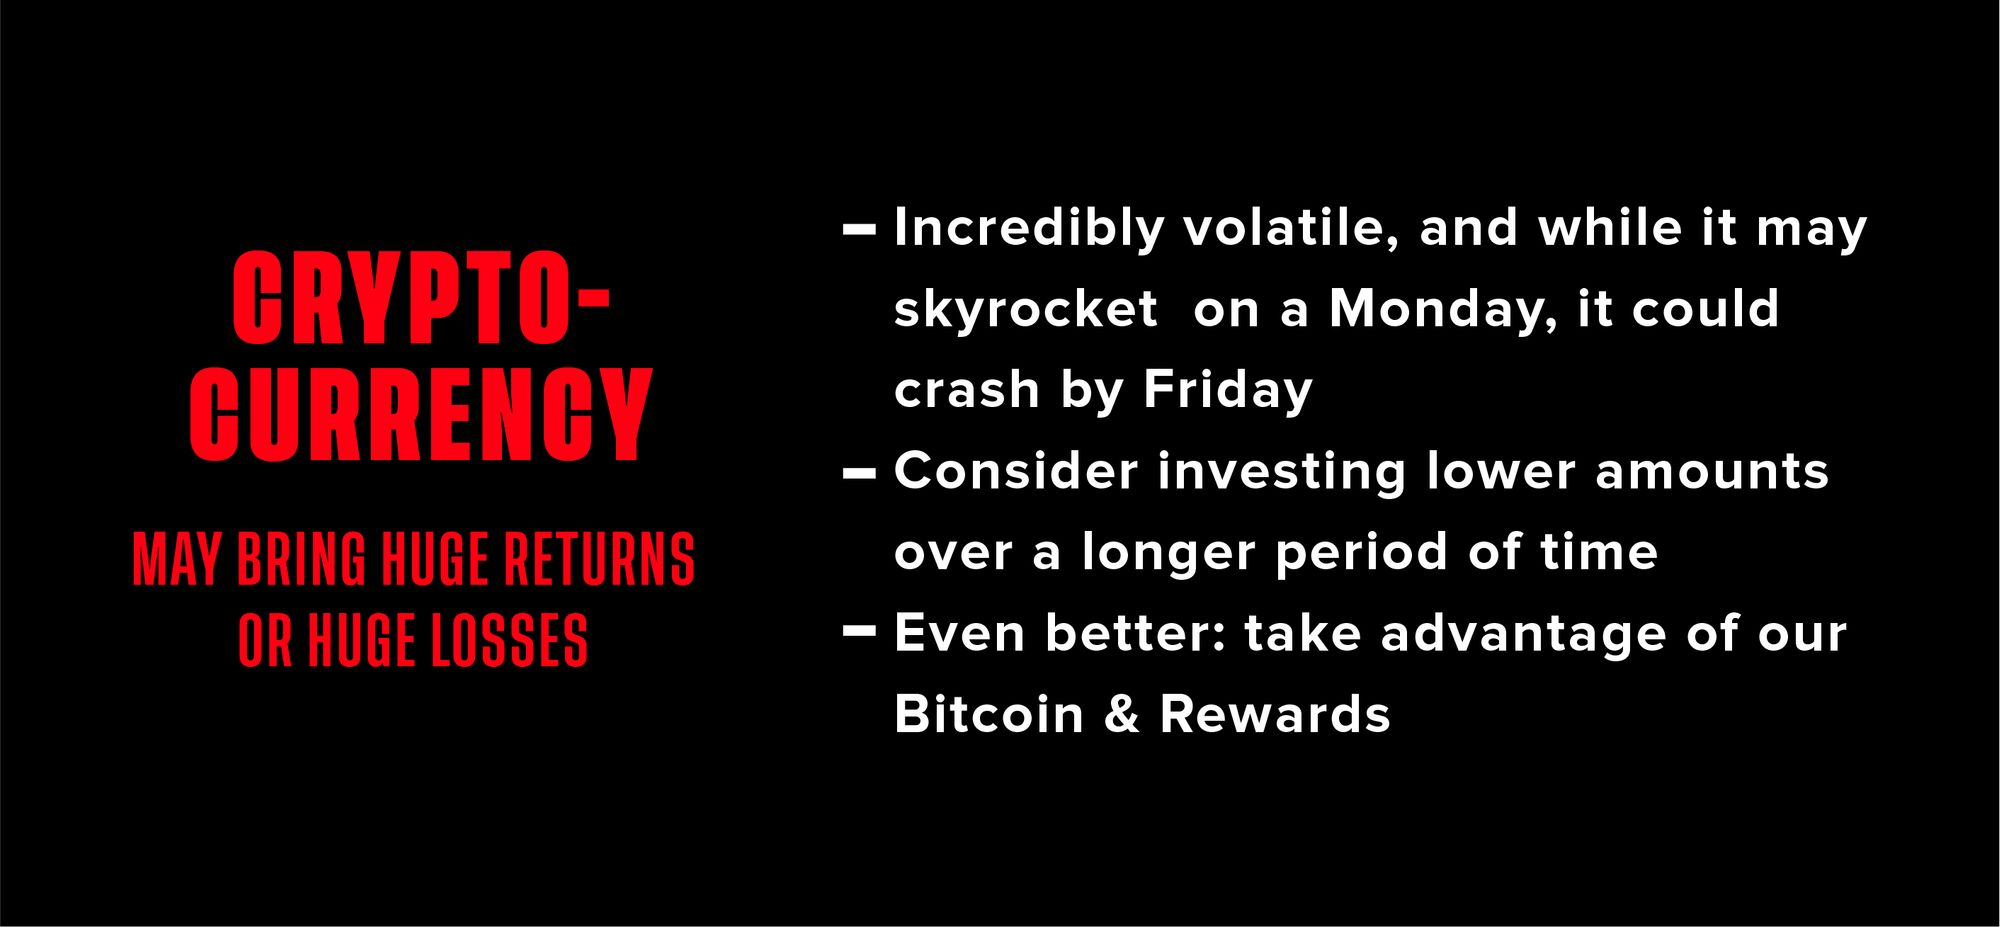 Graphic explaining cryptocurrency. Text says: Cryptocurrency may bring huge returns or huge losses. Crypto is: 1. incredibly volatile 2. Consider investing lower amounts over a longer period of time. Even better: take advantage of our Bitcoin & Rewards.